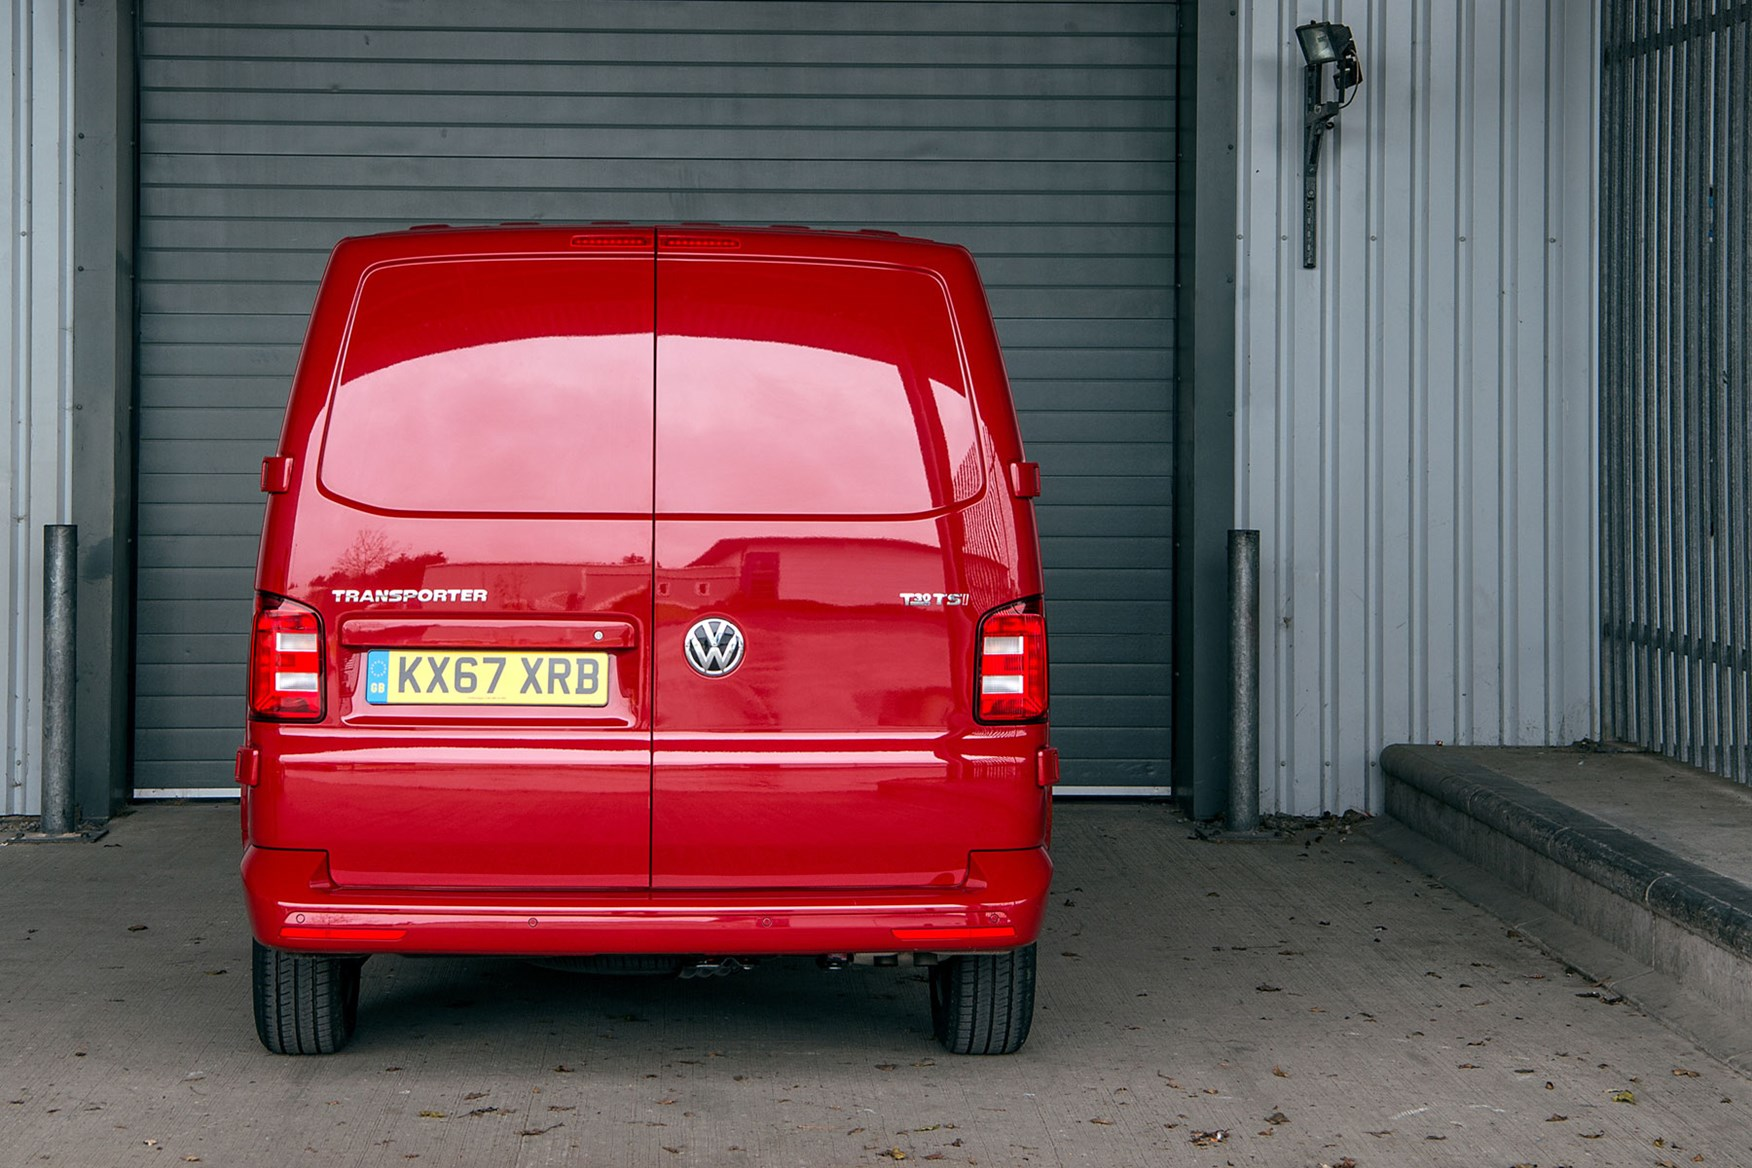 VW Transporter (2015-on) rear view